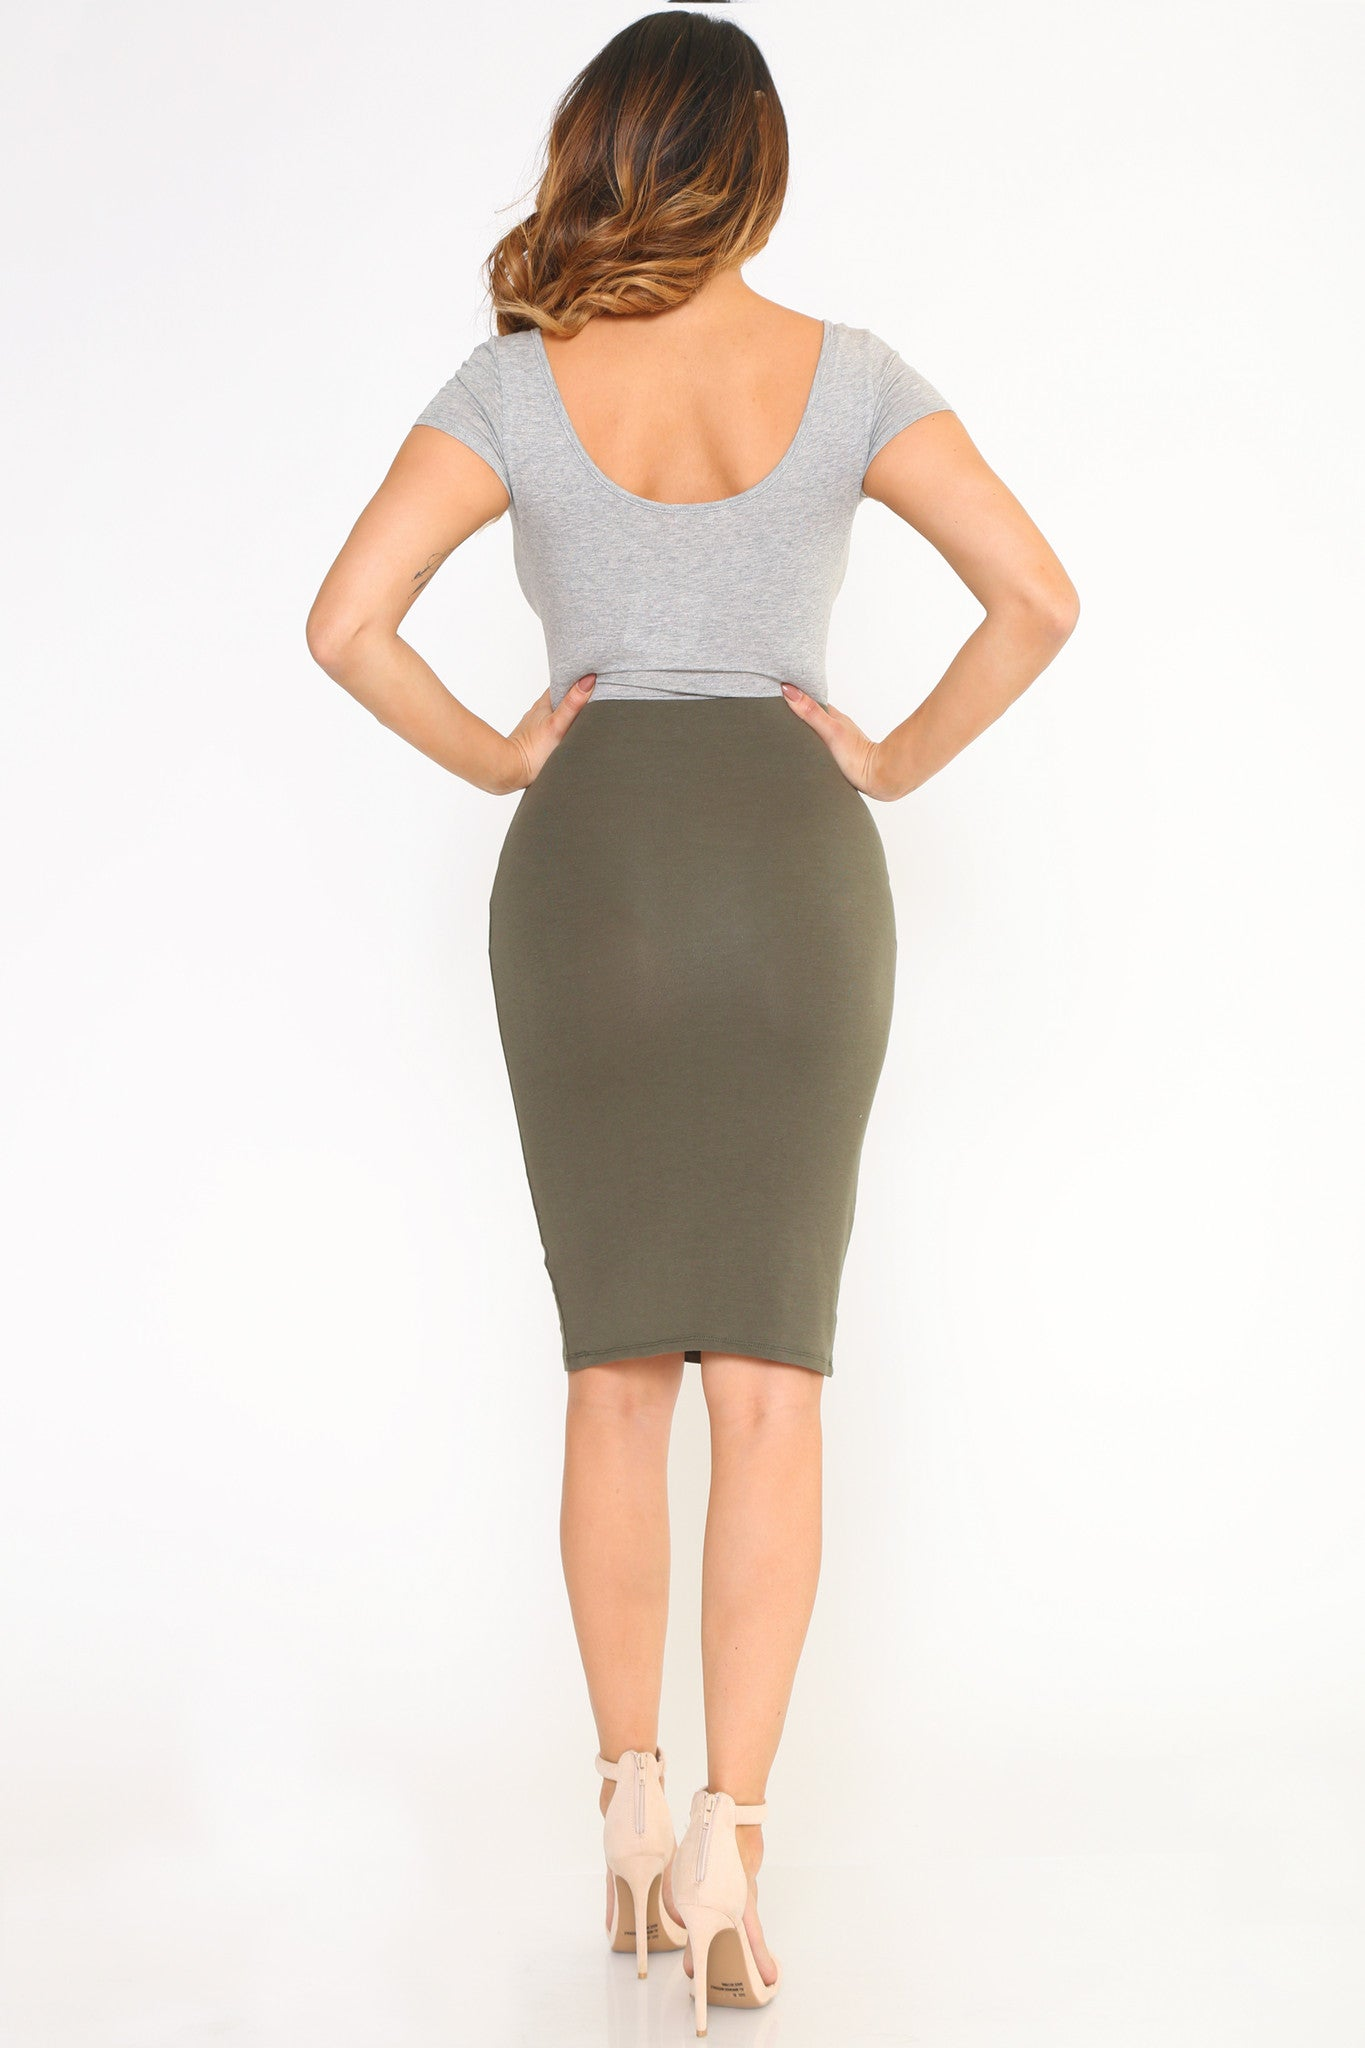 ELLA SKIRT - Glam Envy - 3